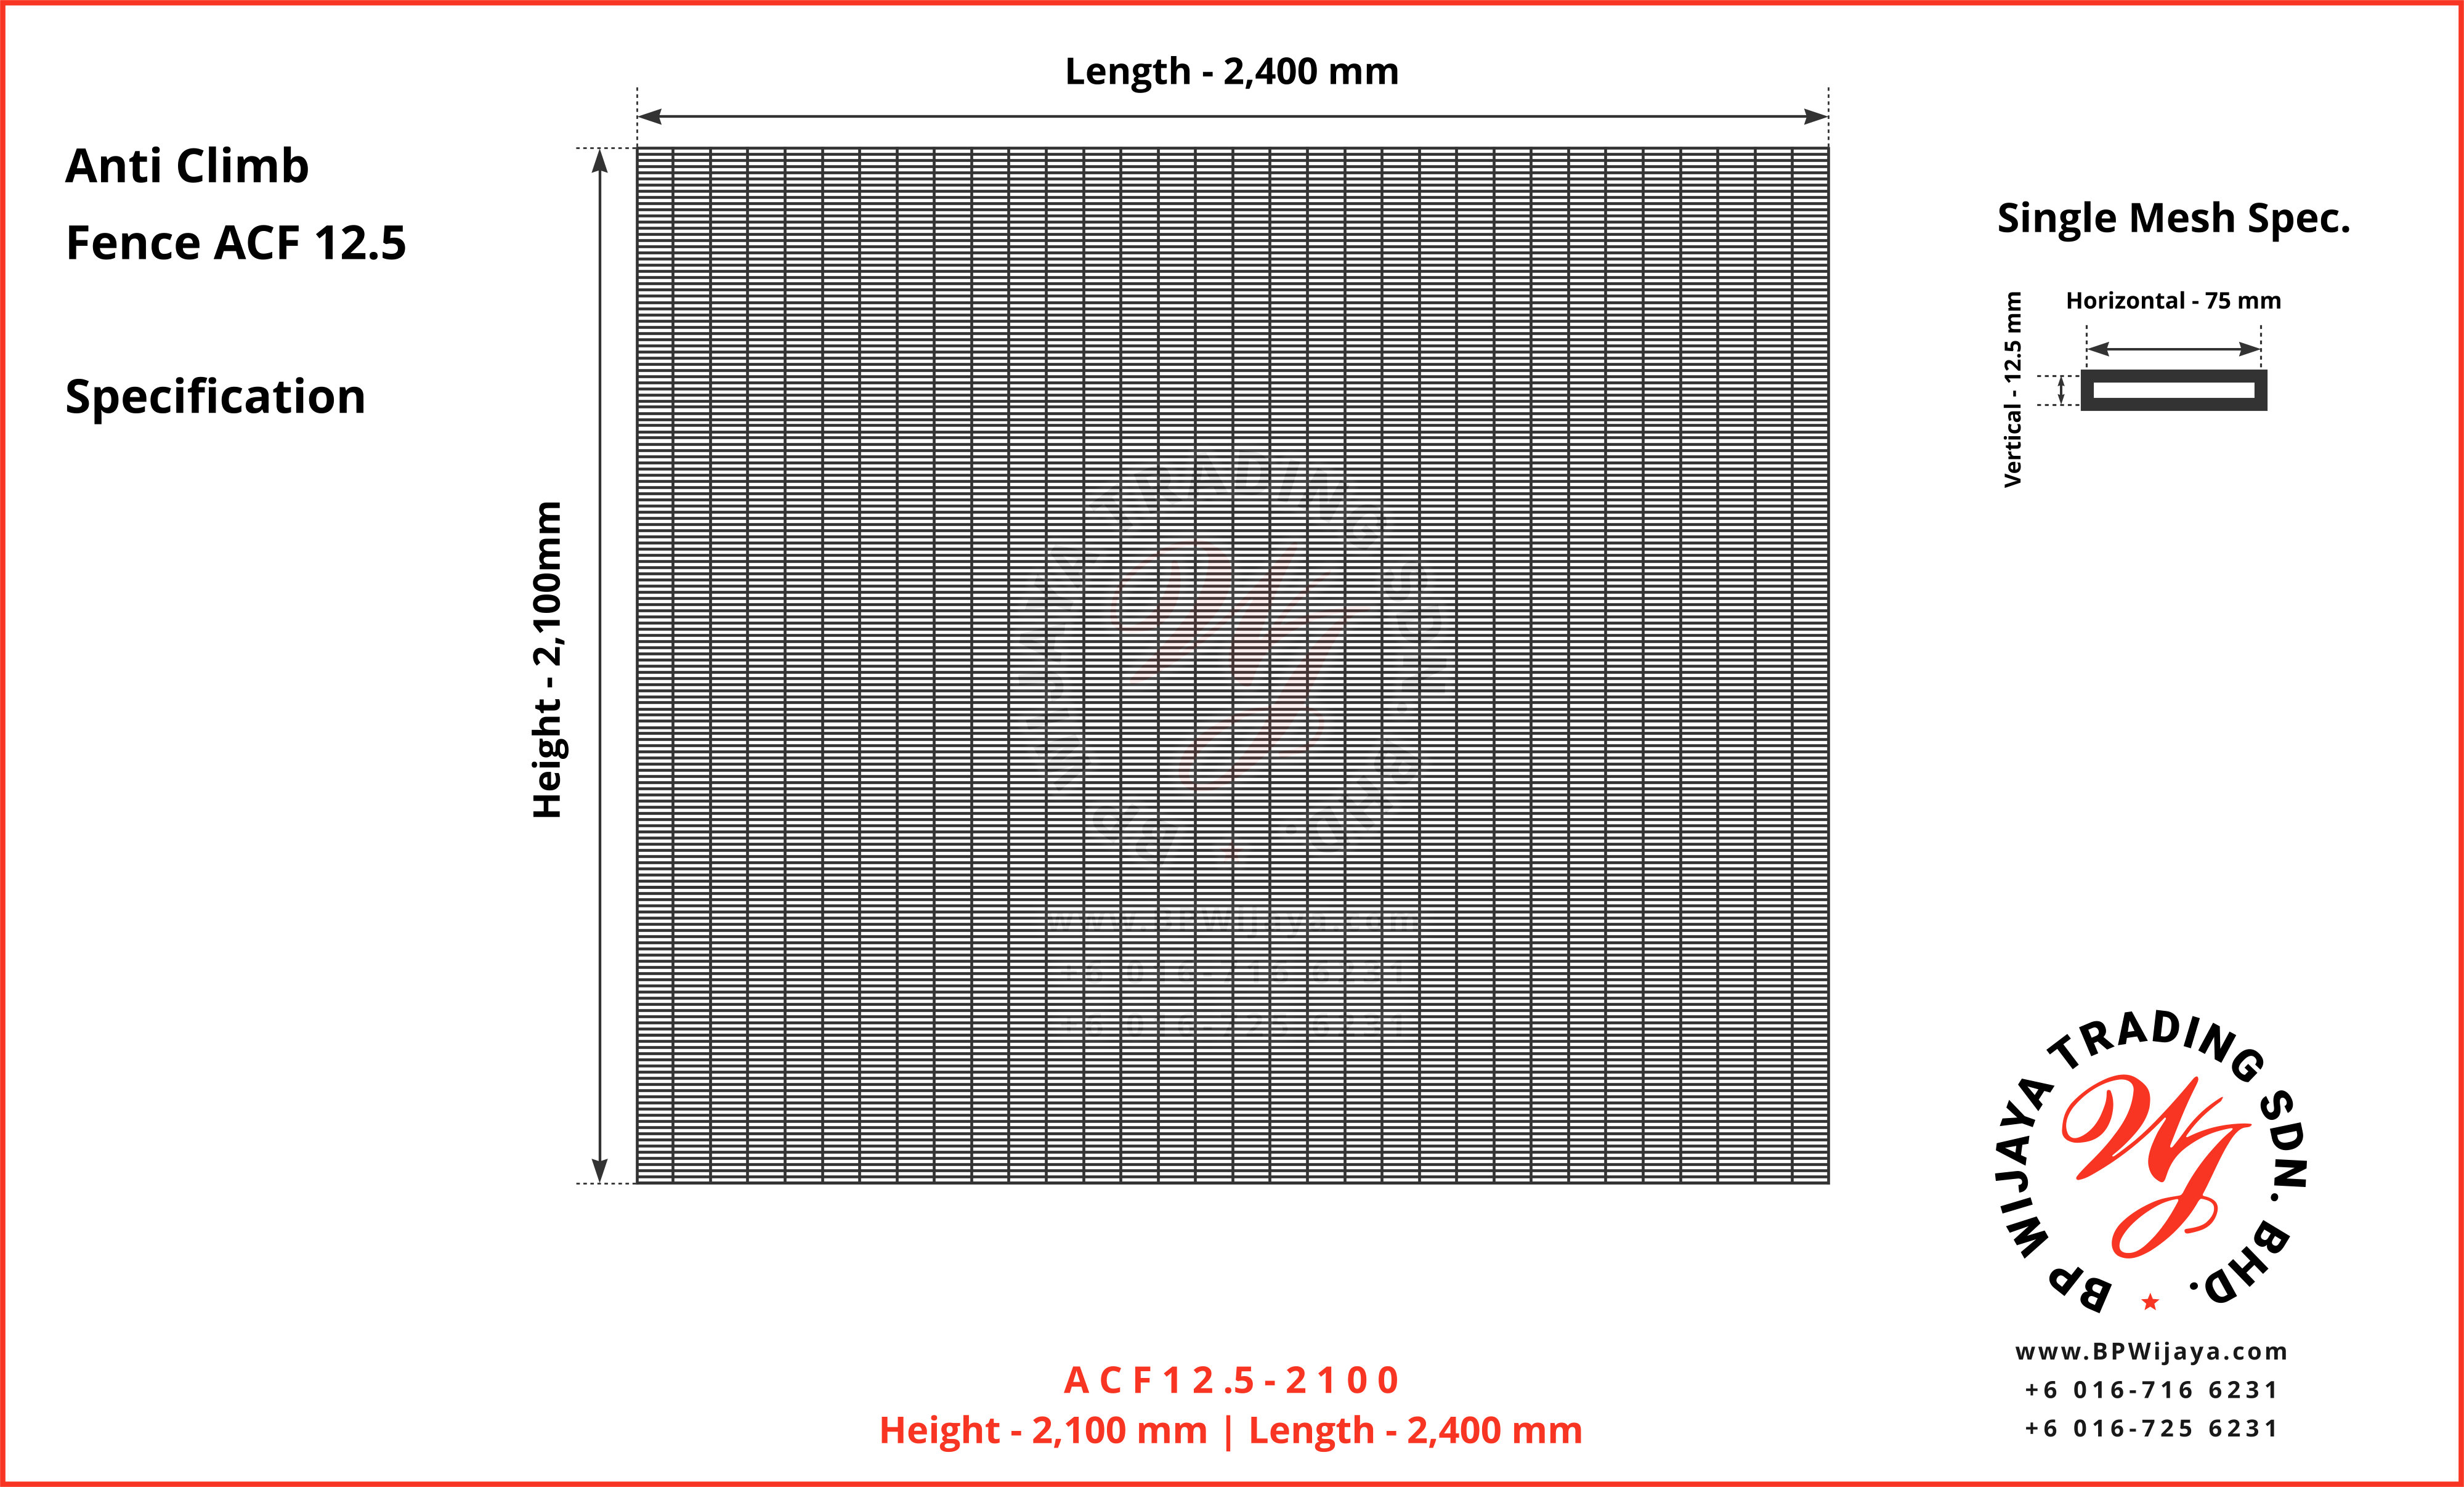 BP Wijaya Trading Sdn Bhd Malaysia manufacturer Distributor safety fences building materials Anti Climb Fence Mesh Wire Fence ACF12-5 Fence BRC from Johor Batu Pahat A06